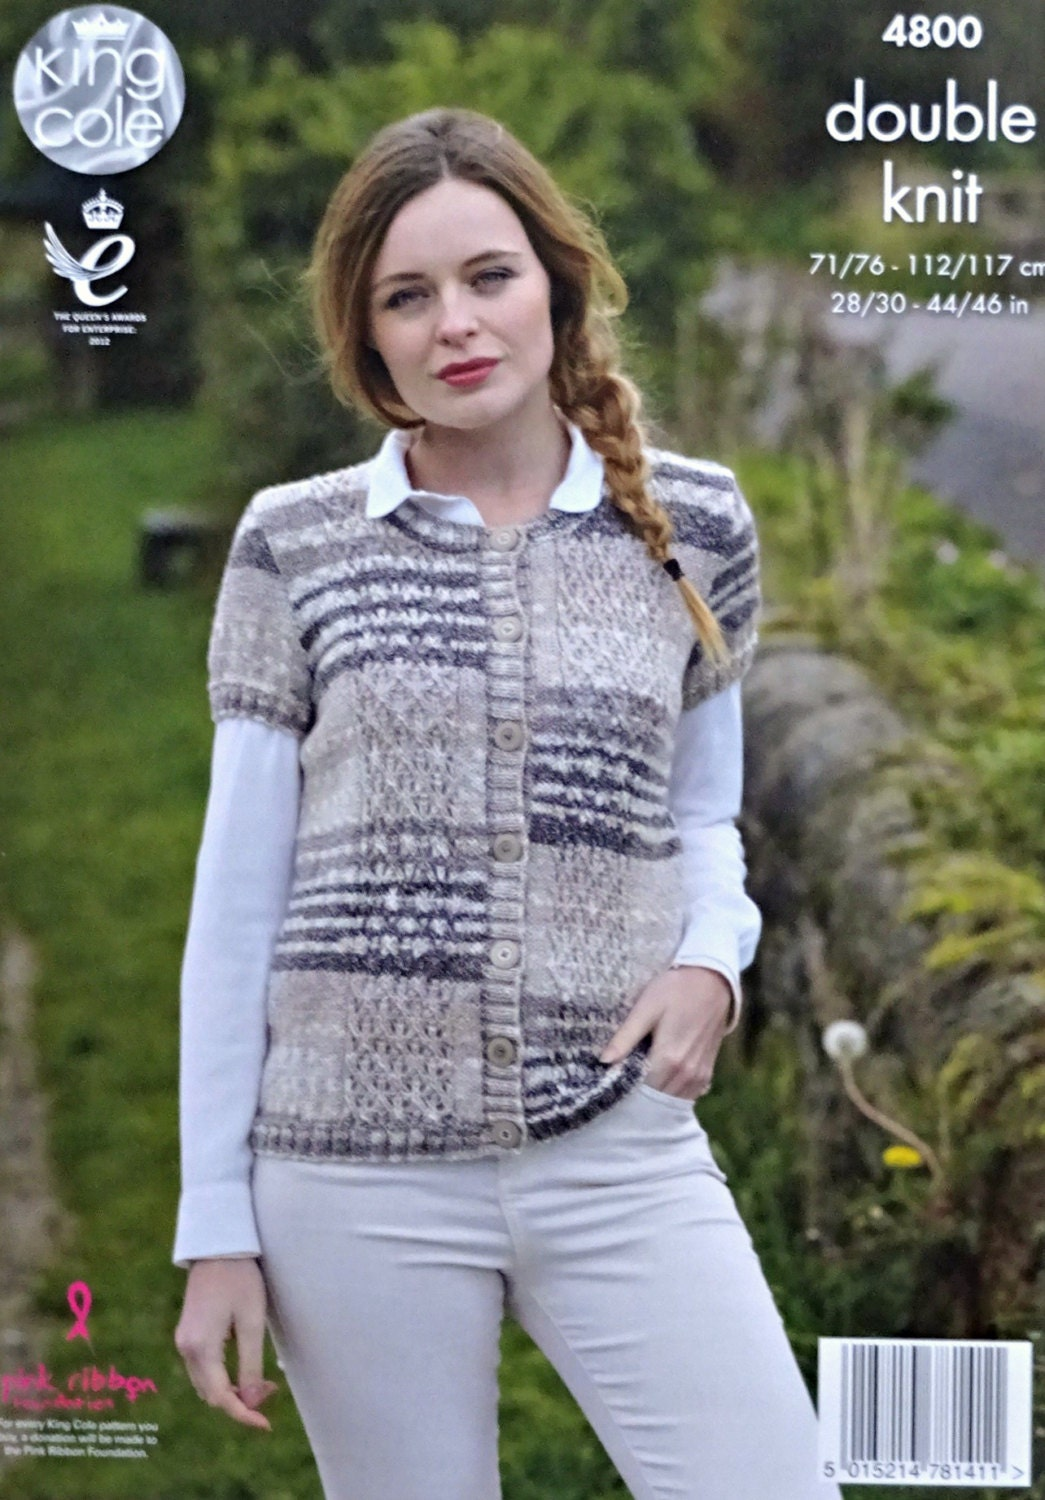 Womens knitting pattern k4800 ladies short sleeve round neck lace womens knitting pattern k4800 ladies short sleeve round neck lace panel cardigan knitting pattern dk light worsted king cole bankloansurffo Image collections